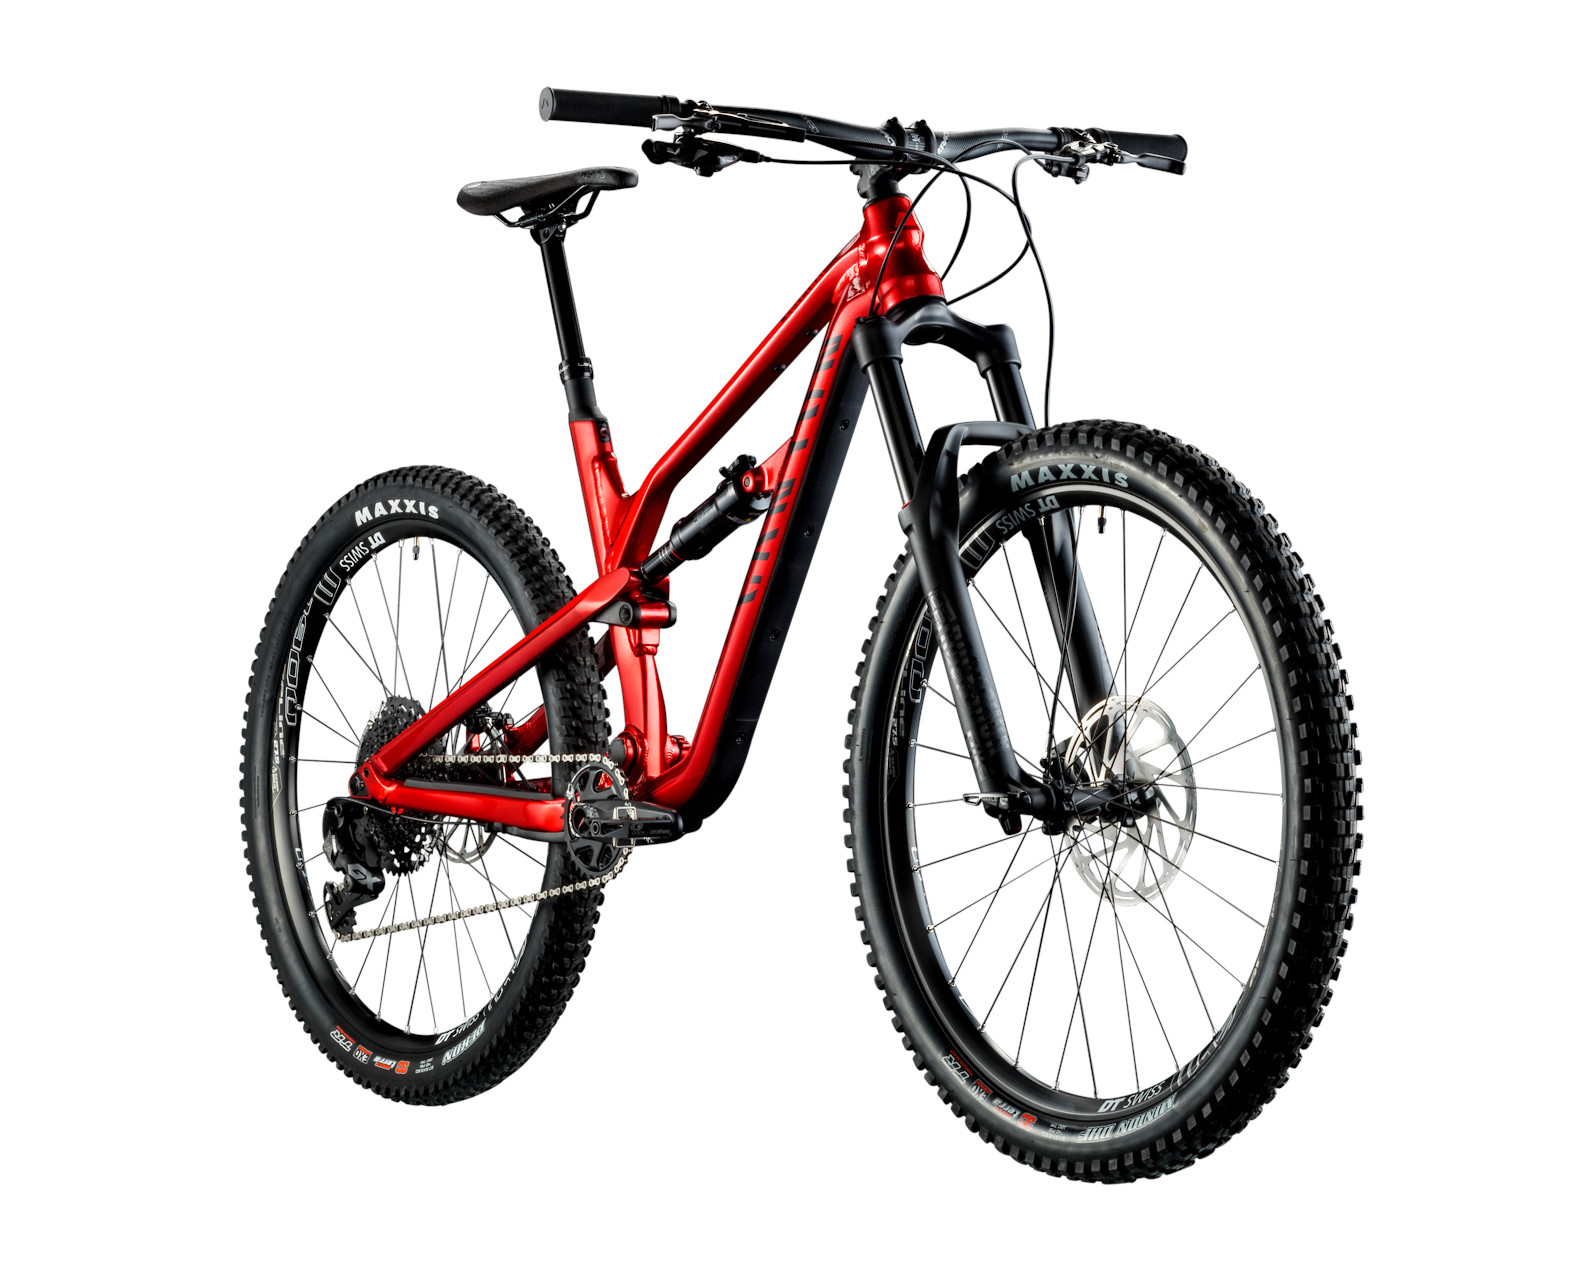 2018 Canyon Spectral AL 6 0 - Reviews, Comparisons, Specs